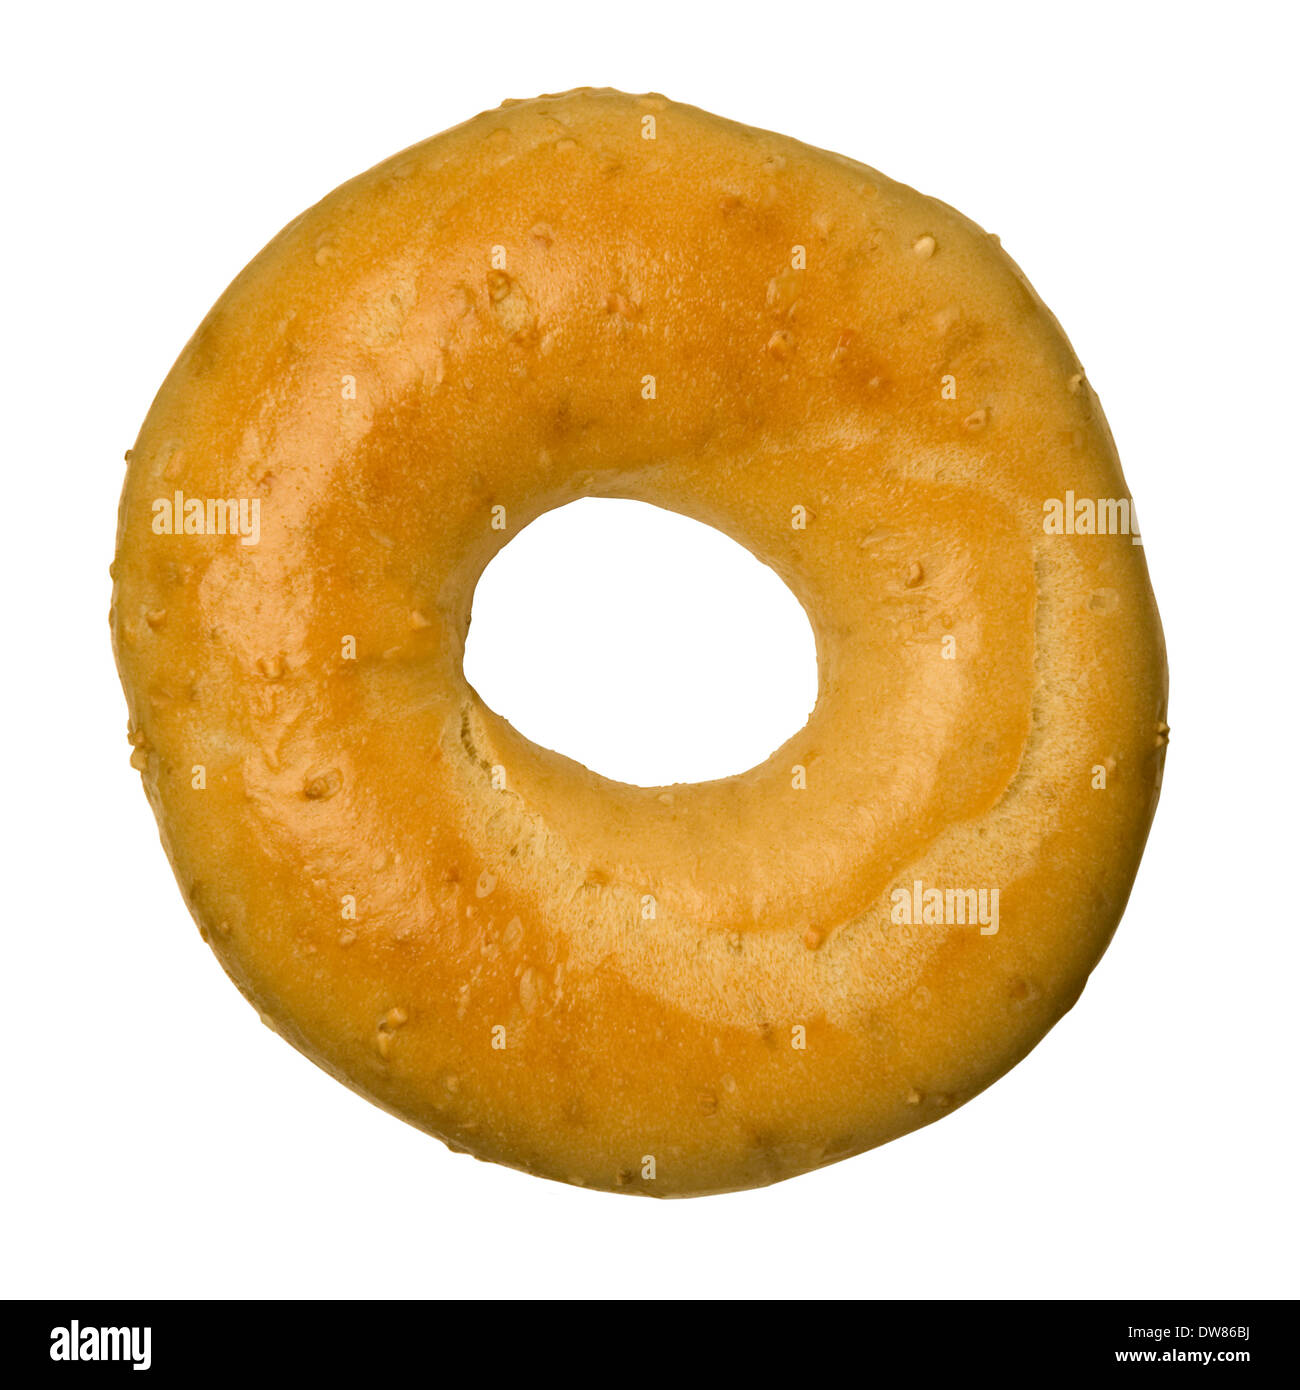 Oat bran bagel isolated against a white background - Stock Image